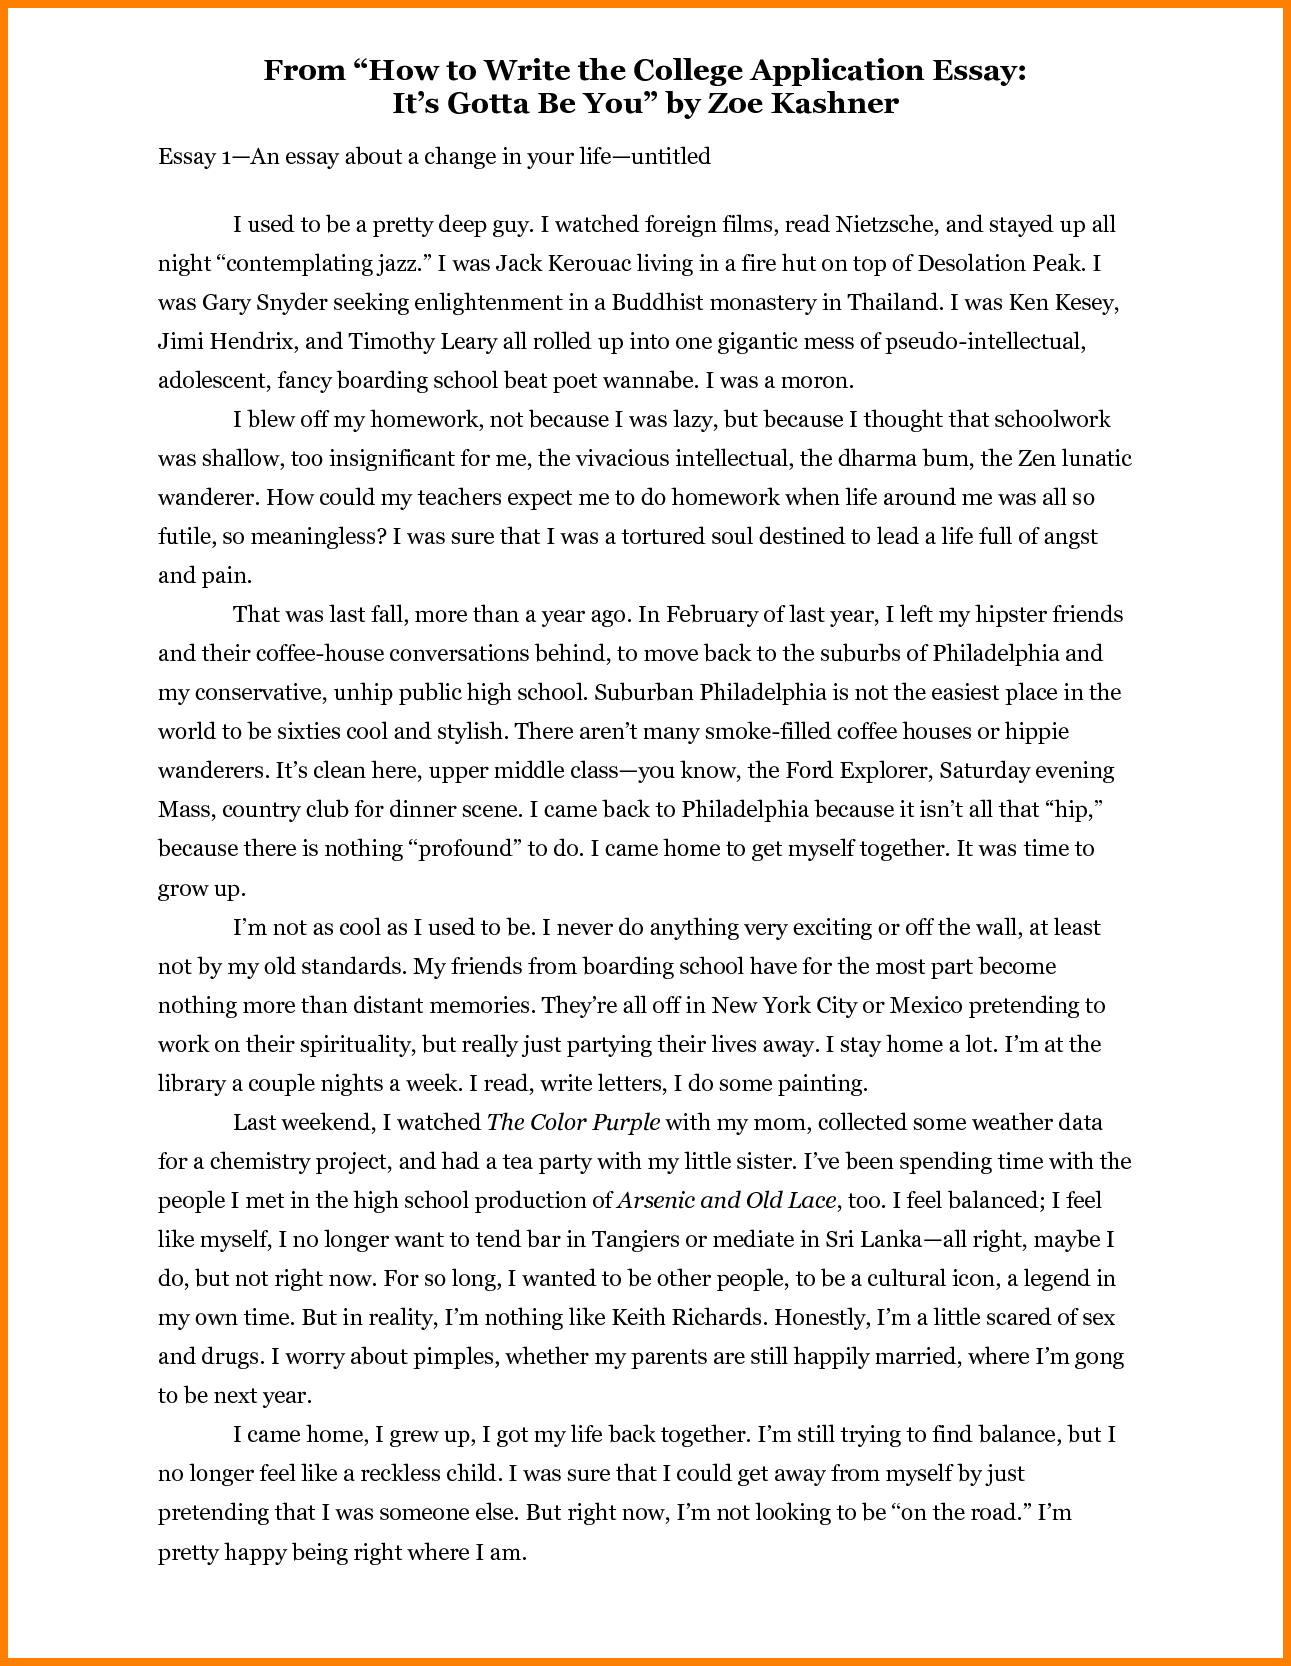 006 Essay Example How To Start Off An About Yourself Unique Myself For College A Job Full